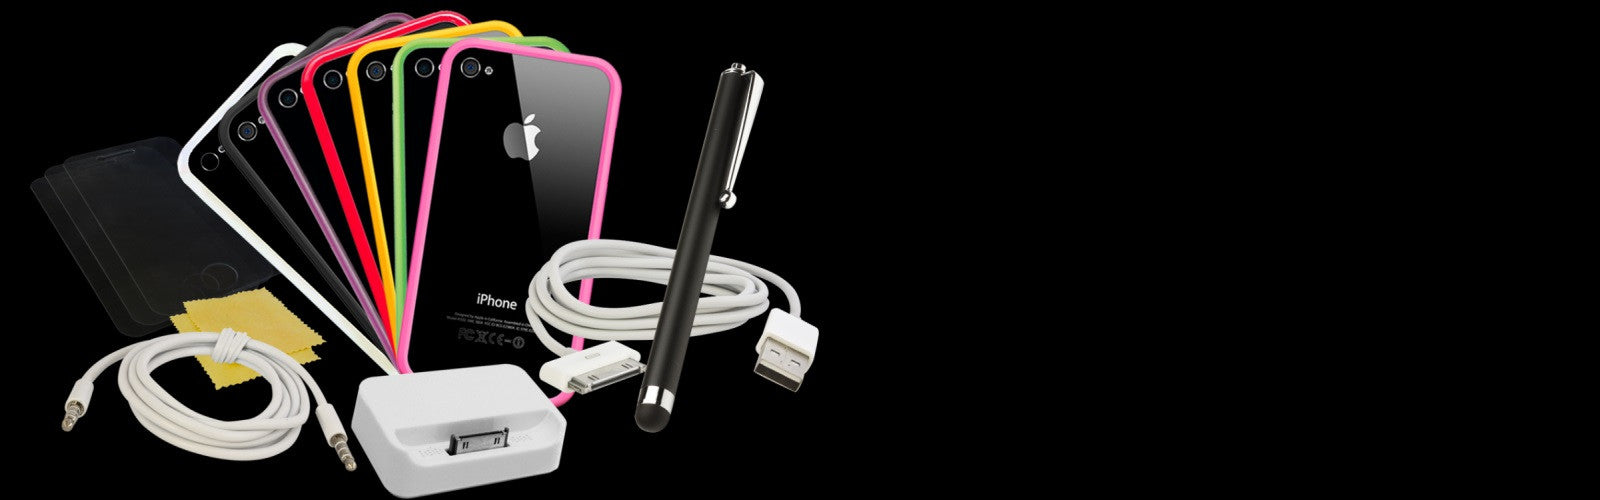 iphone accessories, ipad extras, samsung chargers